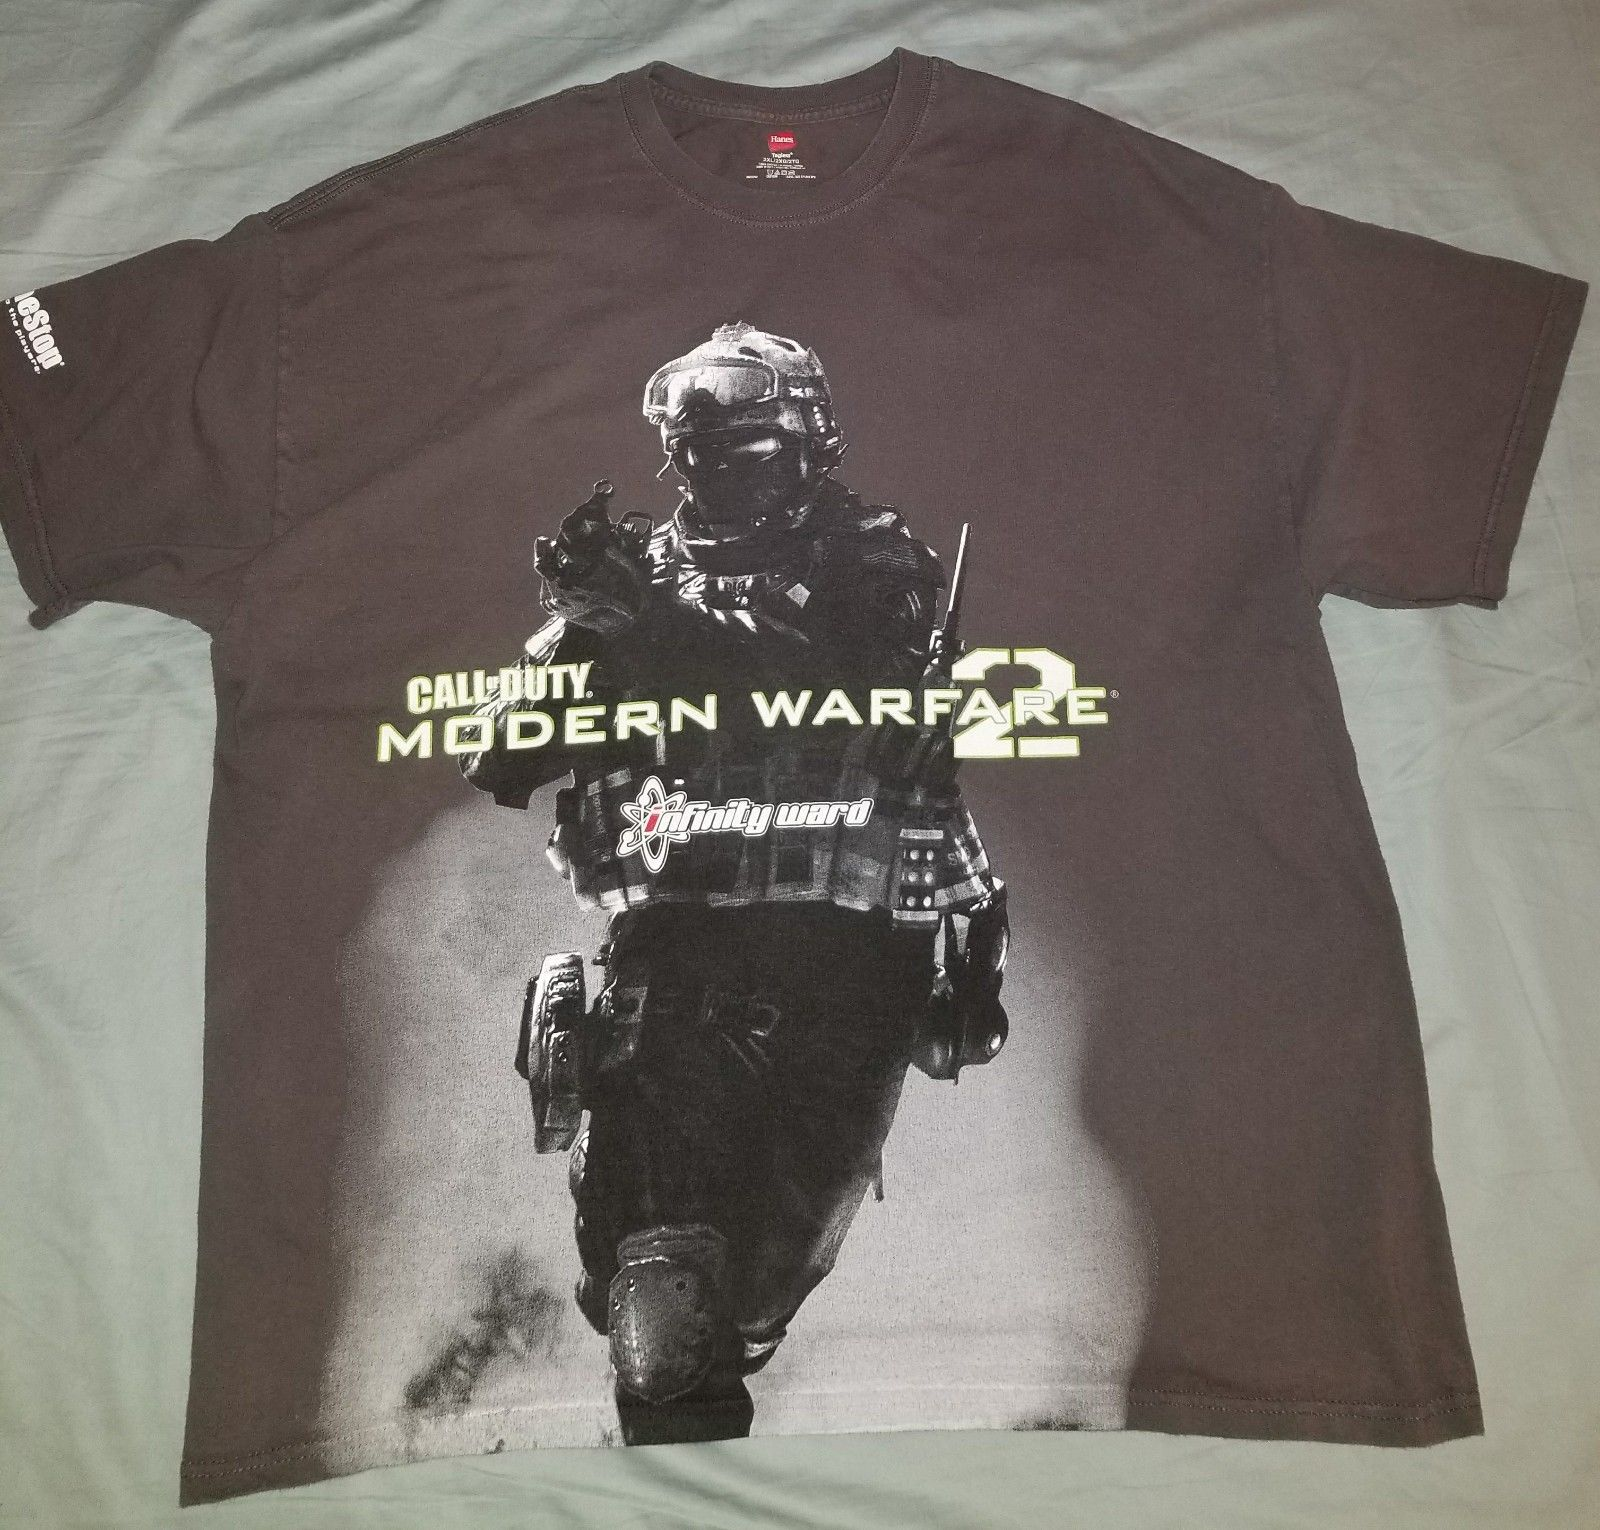 CALL OF DUTY COD MODERN WARFARE 1 & 2 MENS COTTON T SHIRTS 2XL 3